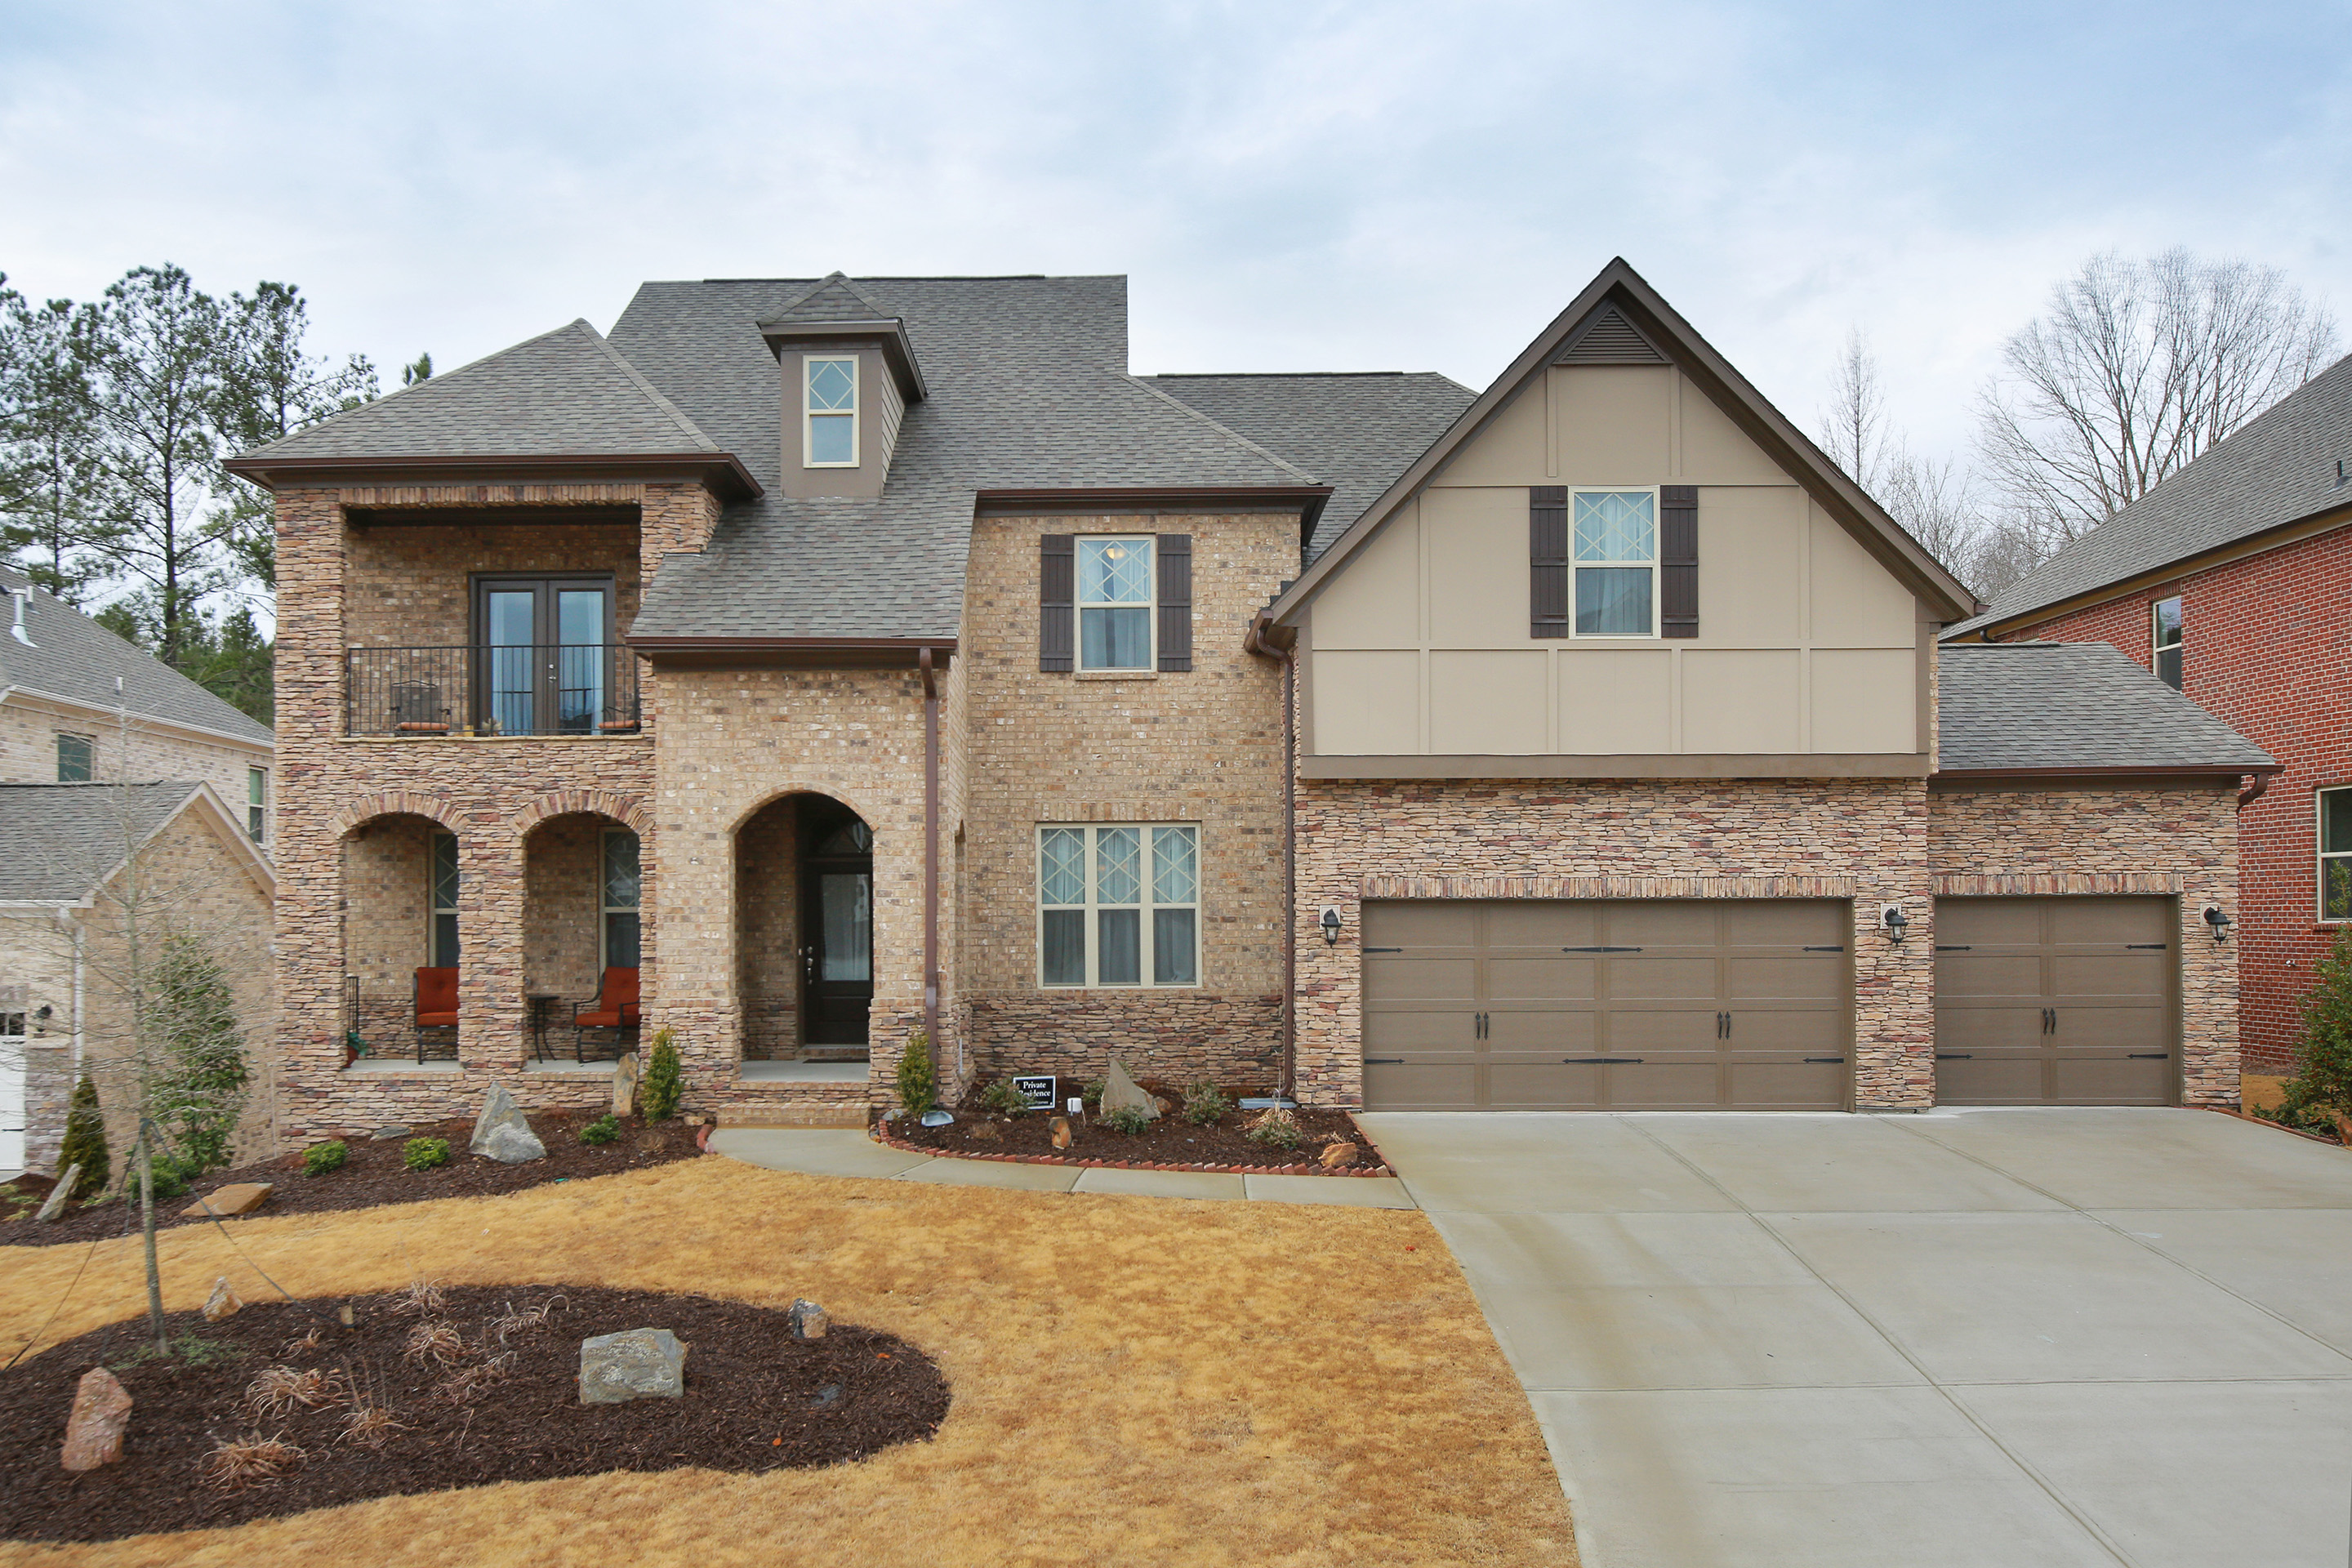 Single Family Home for Sale at One of a Kind Tara Floor Plan with Double Porches 2550 Maple Ridge Lane Cumming, Georgia, 30041 United States